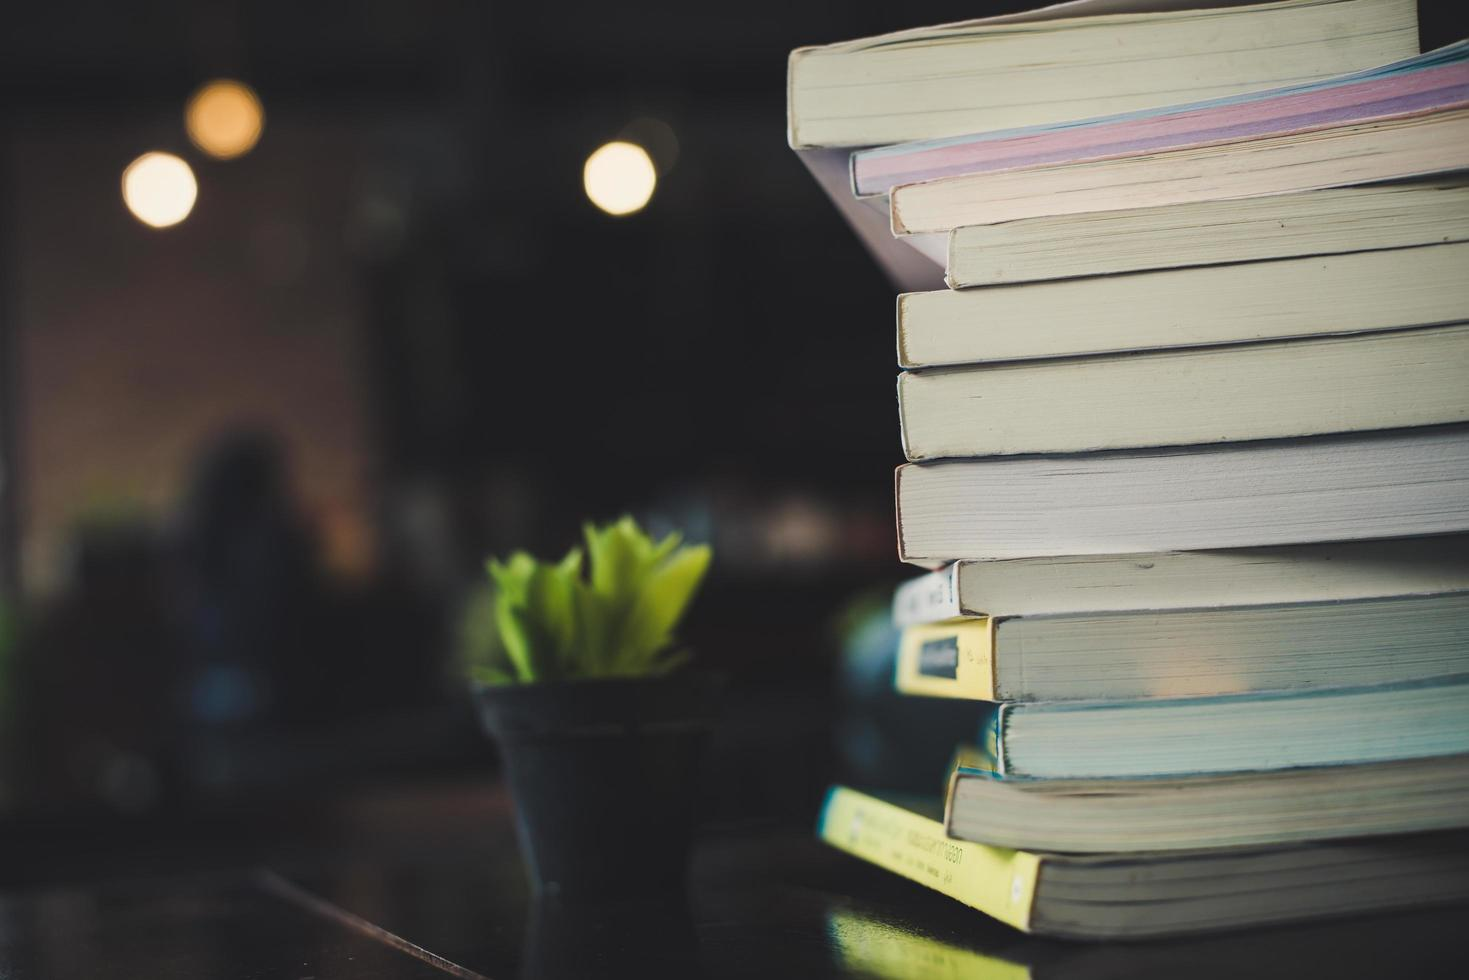 Piles of books on a table over a blurred library background photo